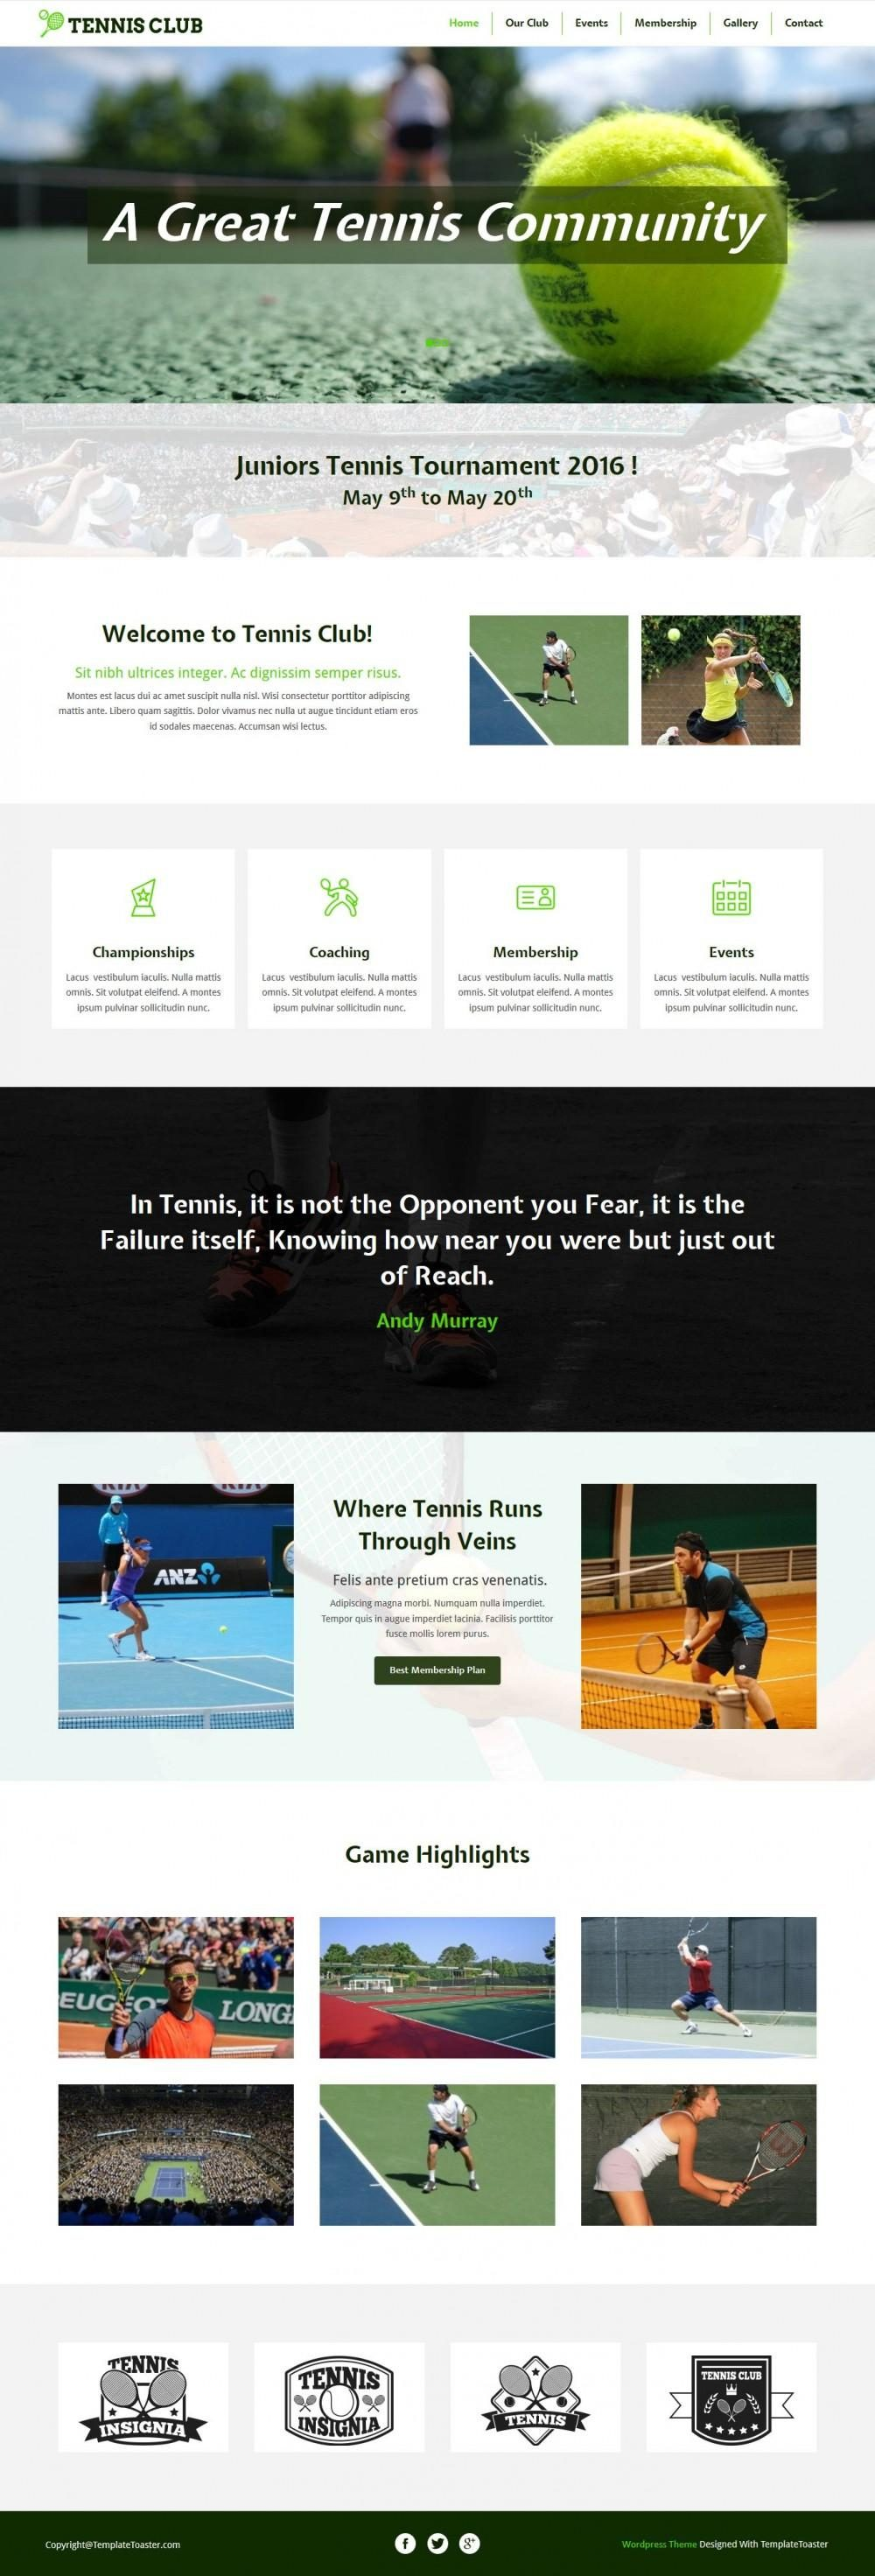 Tennis Club - Joomla Template for Tennis/Badminton Club